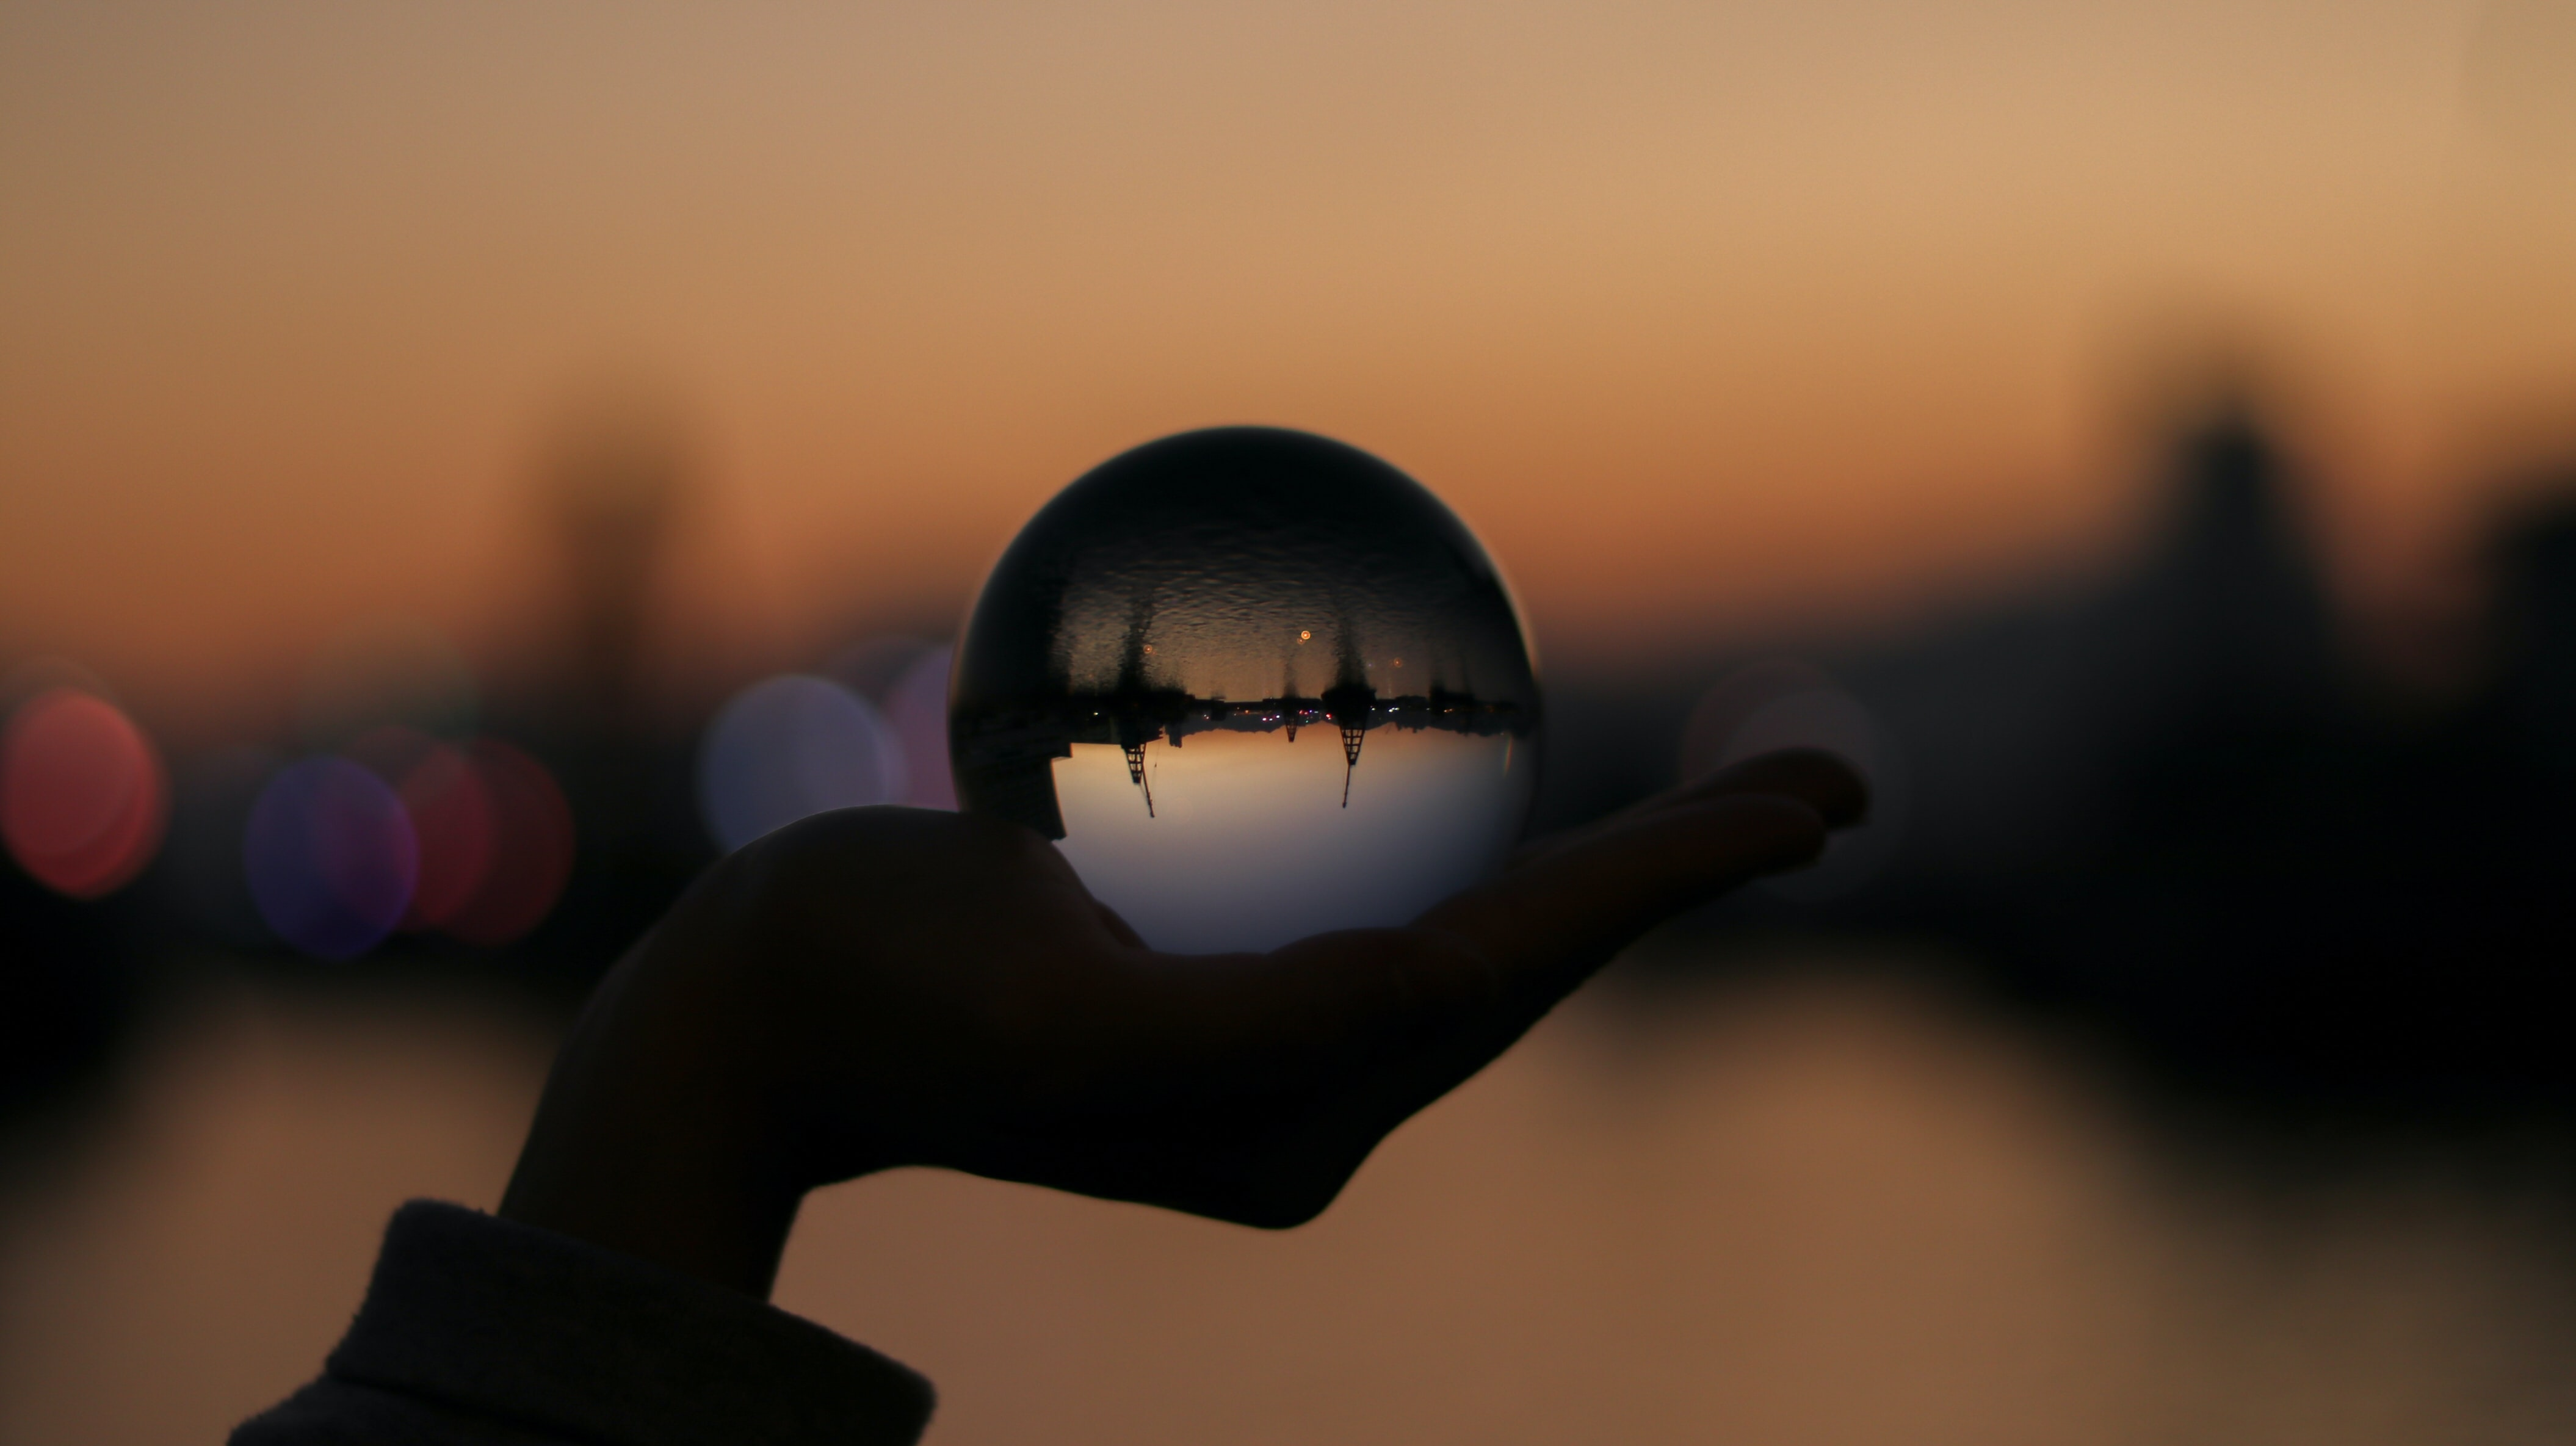 person holding glass ball in selective focus photography